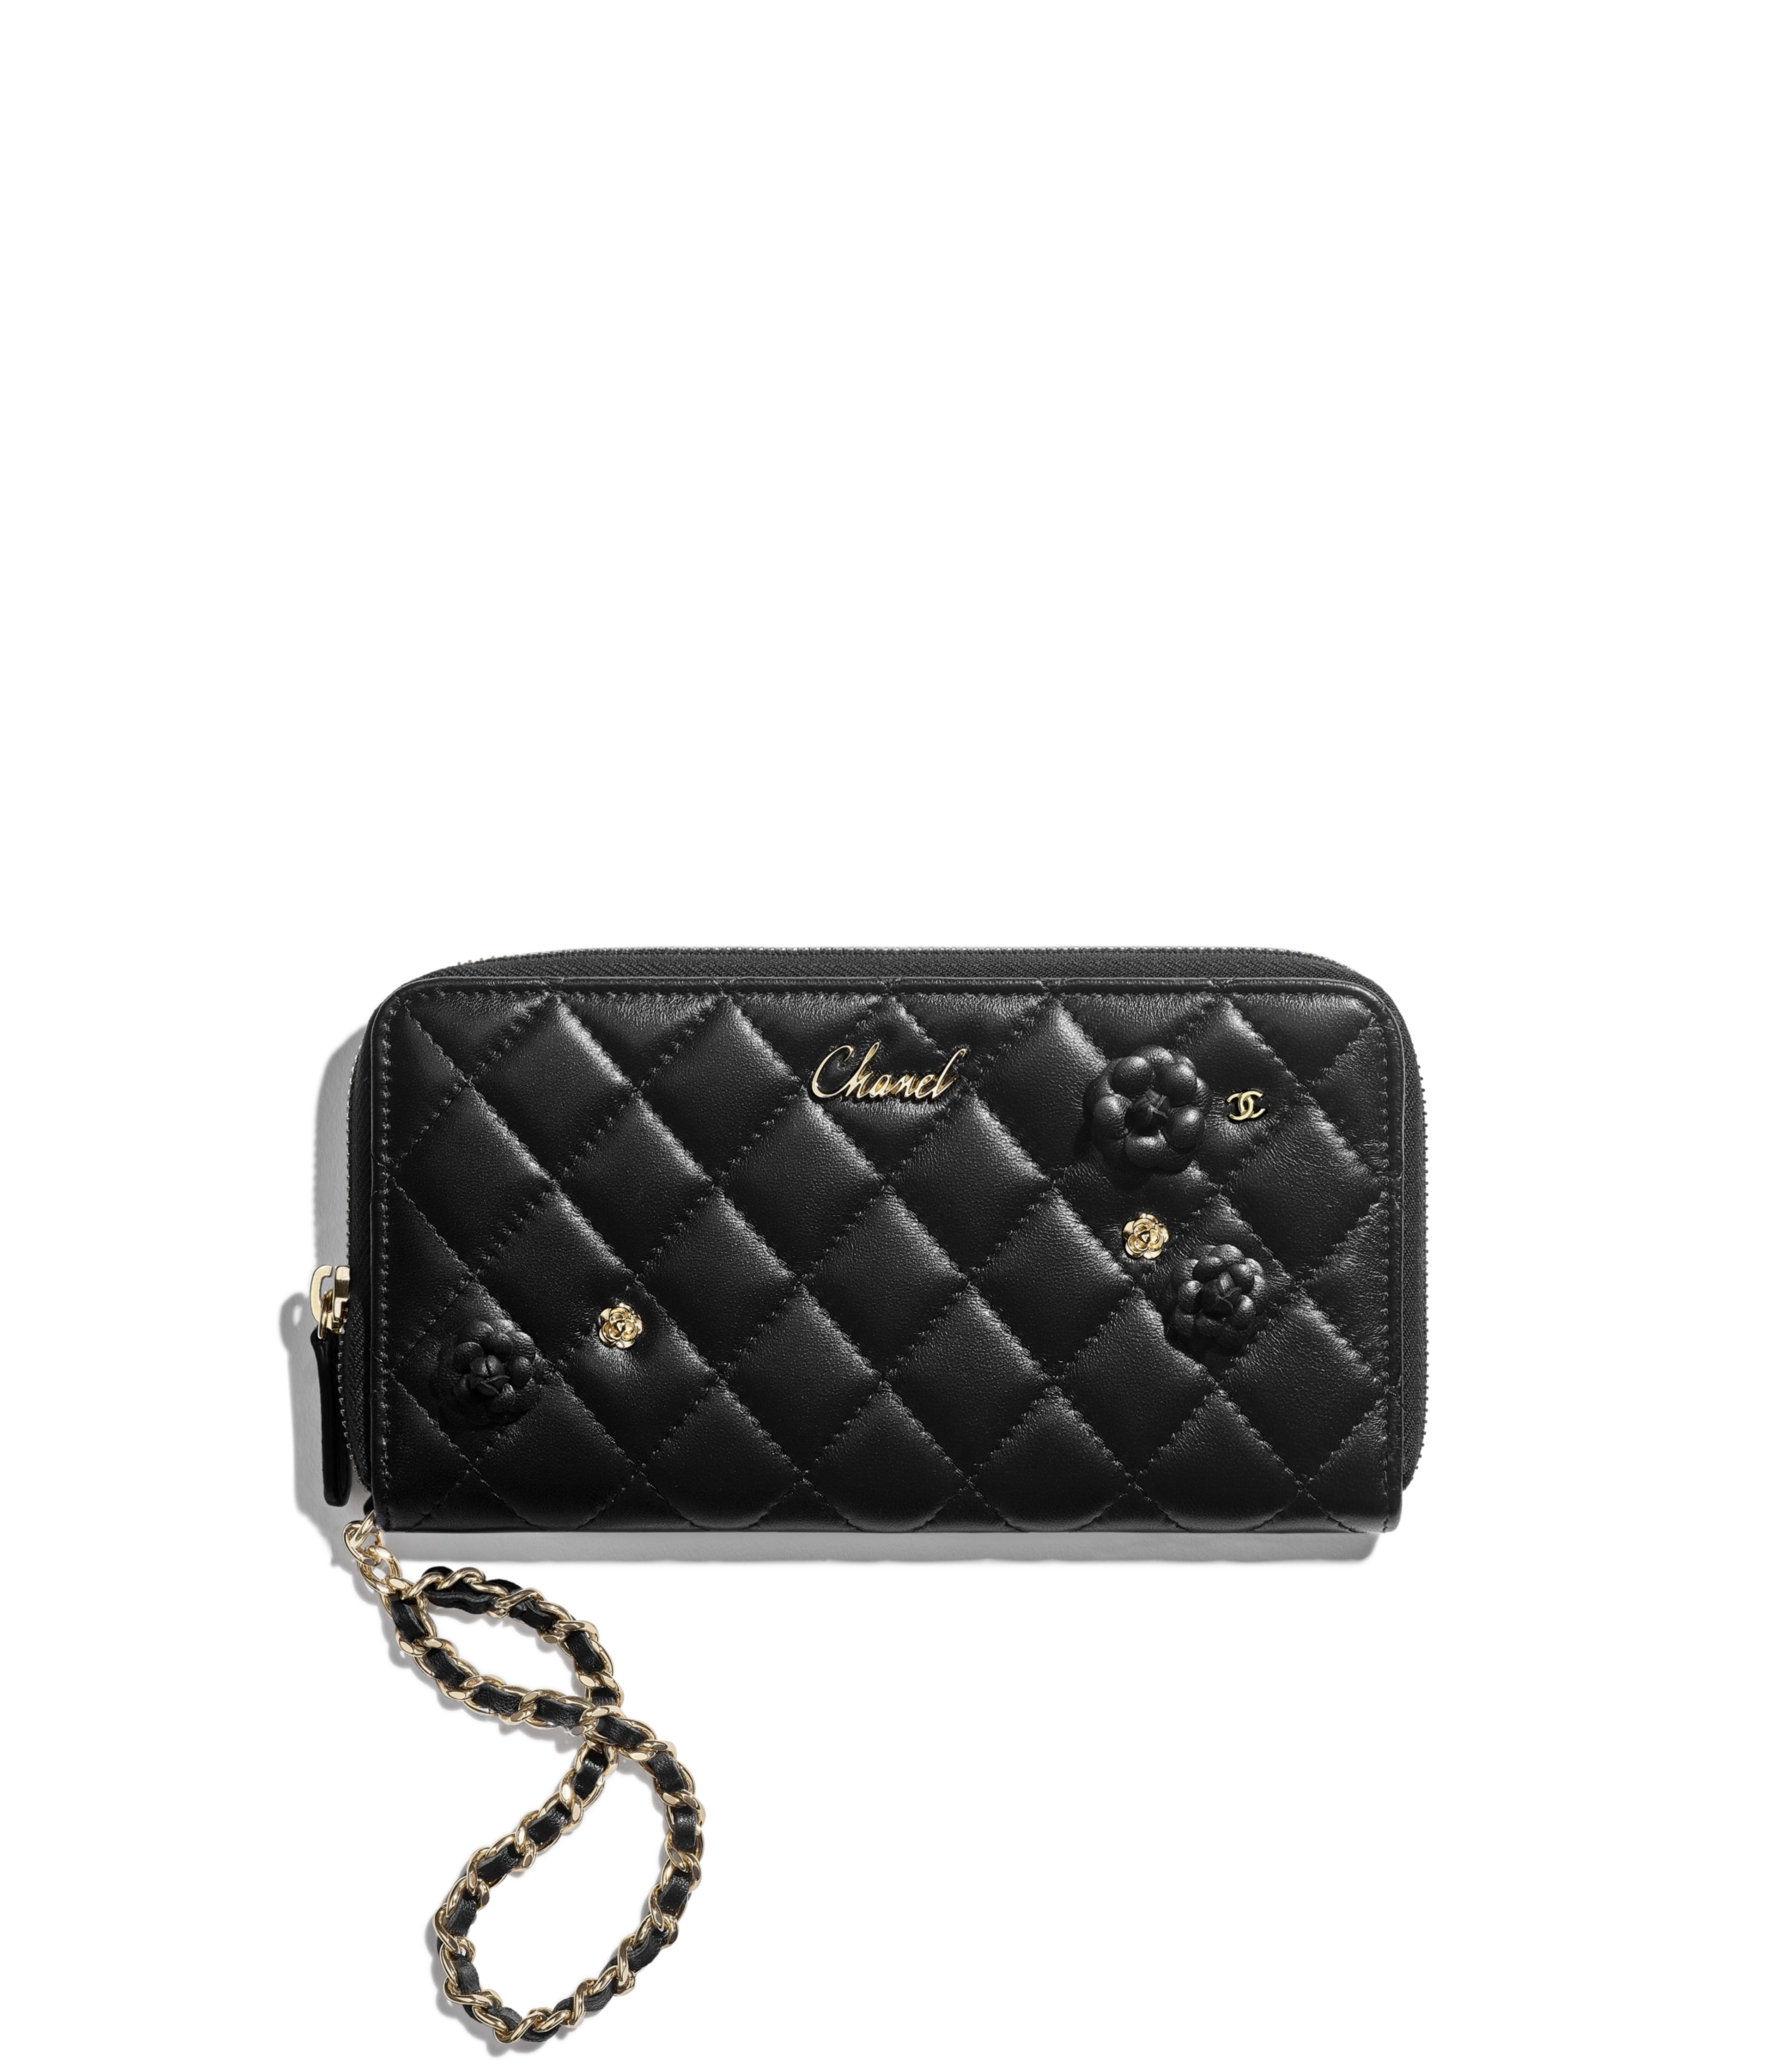 Iphone Chanel case with chain price